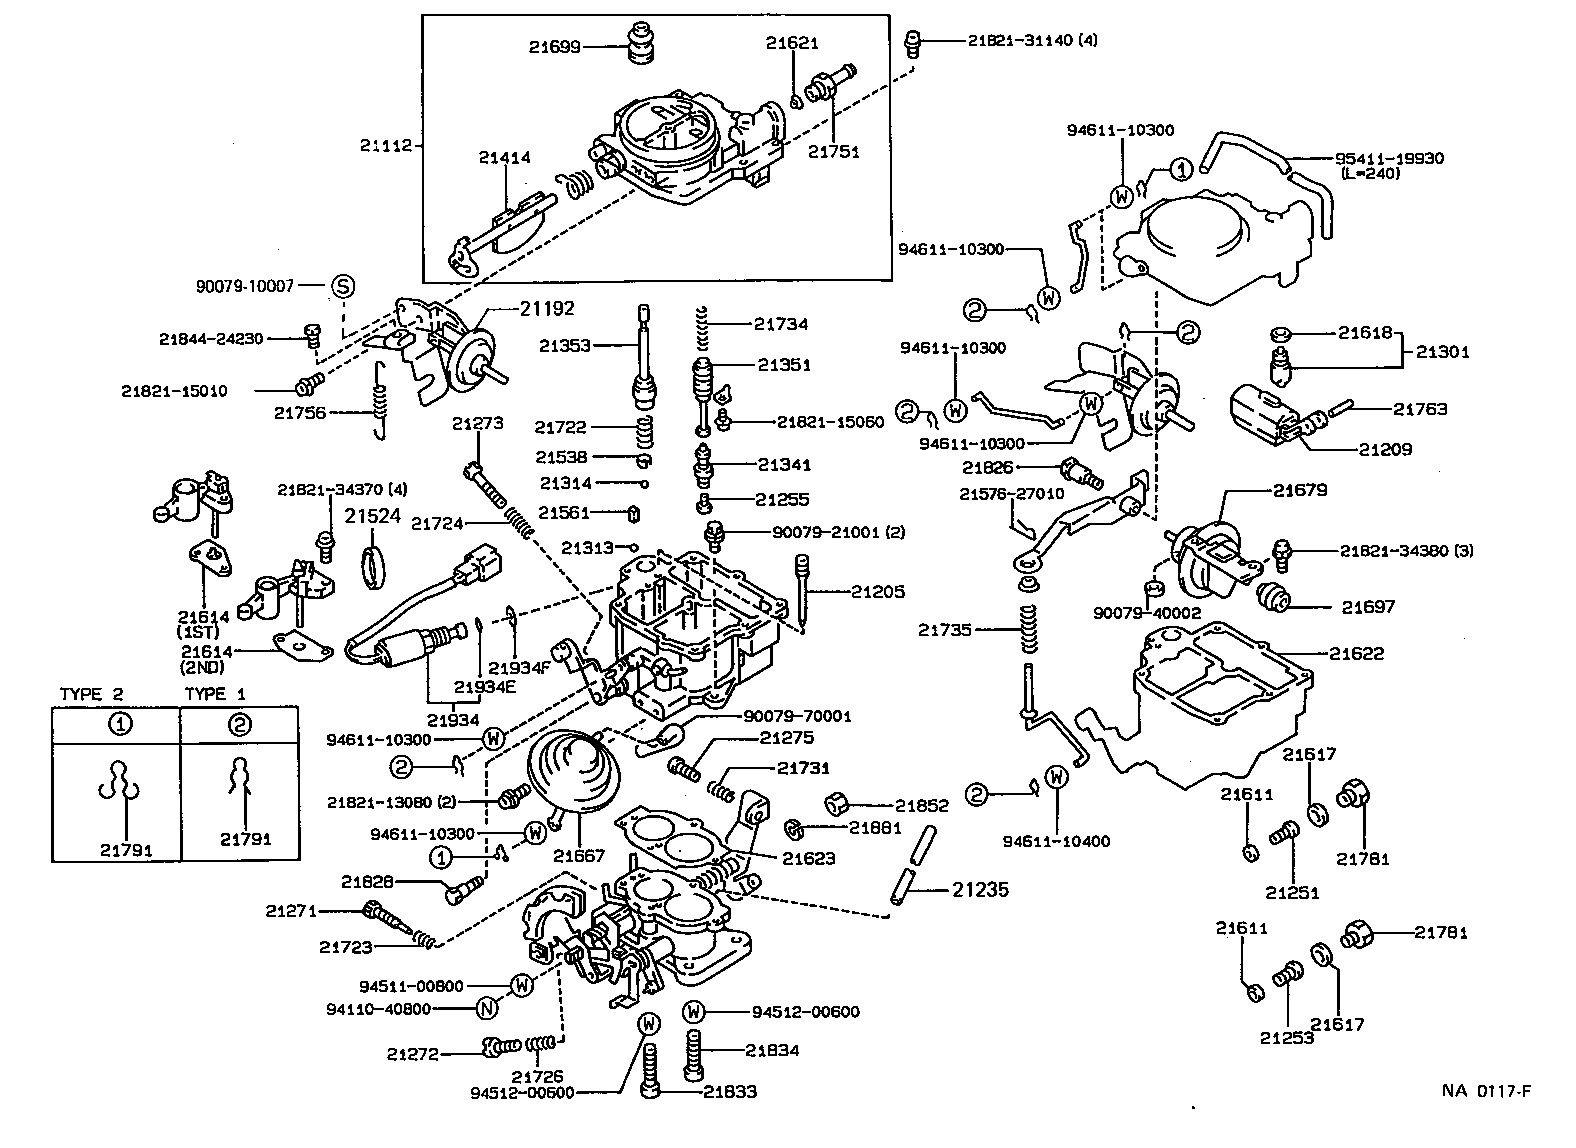 1989 Toyota Corolla Vacuum Diagram Trusted Schematics Electrical Wiring Diagrams 22r